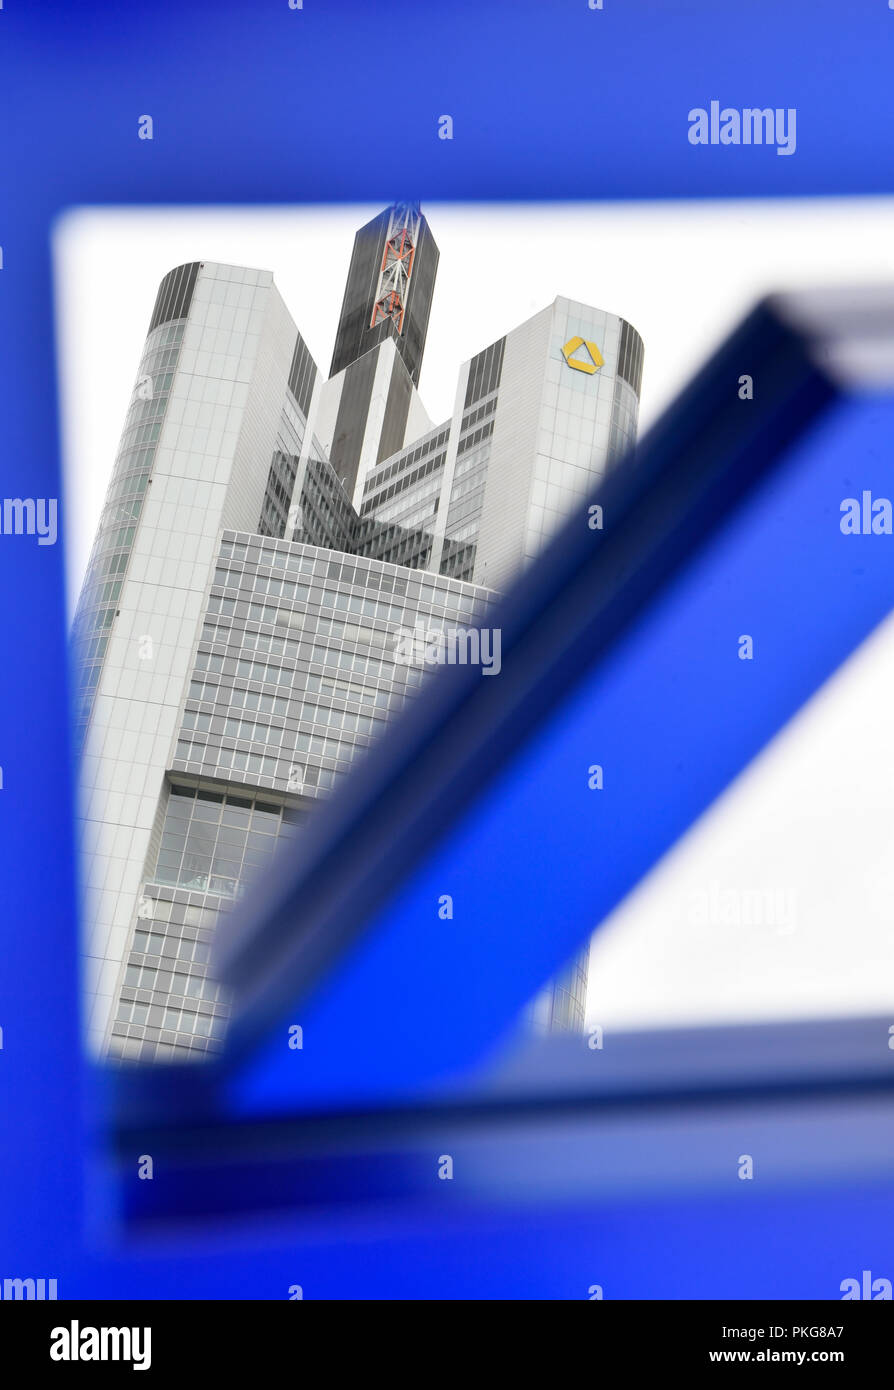 13 September 2018, Hessen, Frankfurt/Main: ILLUSTRATION - 13 September 2018, Germany, Frankfurt/Main: The Commerzbank headquarters can be seen in a mirror with the Deutsche Bank logo. Again and again there is speculation about a merger of the two financial institutions. Photo: Arne Dedert/dpa - Stock Image